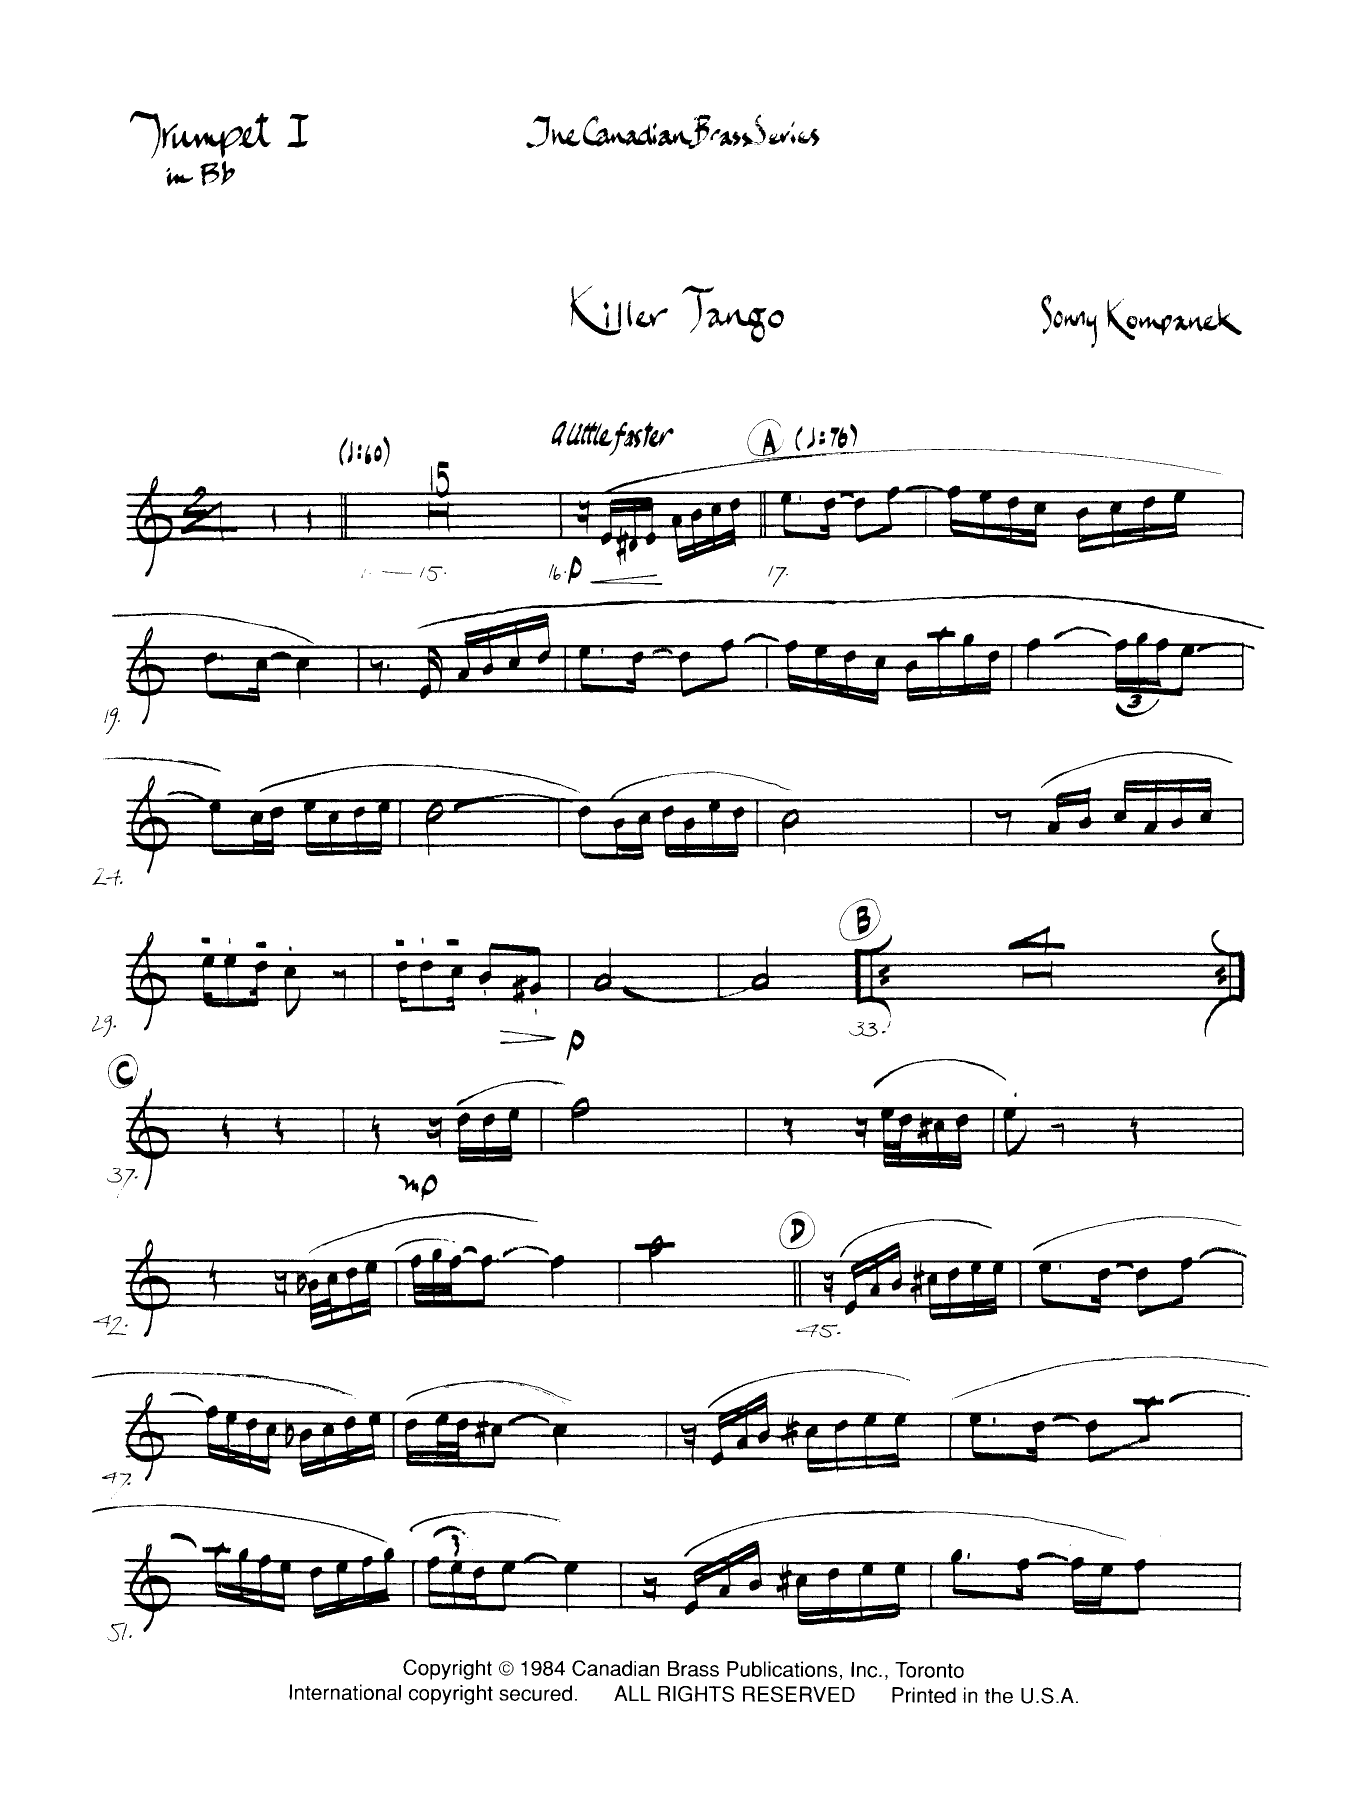 Killer Tango - Bb Trumpet 1 (Brass Quintet) Sheet Music